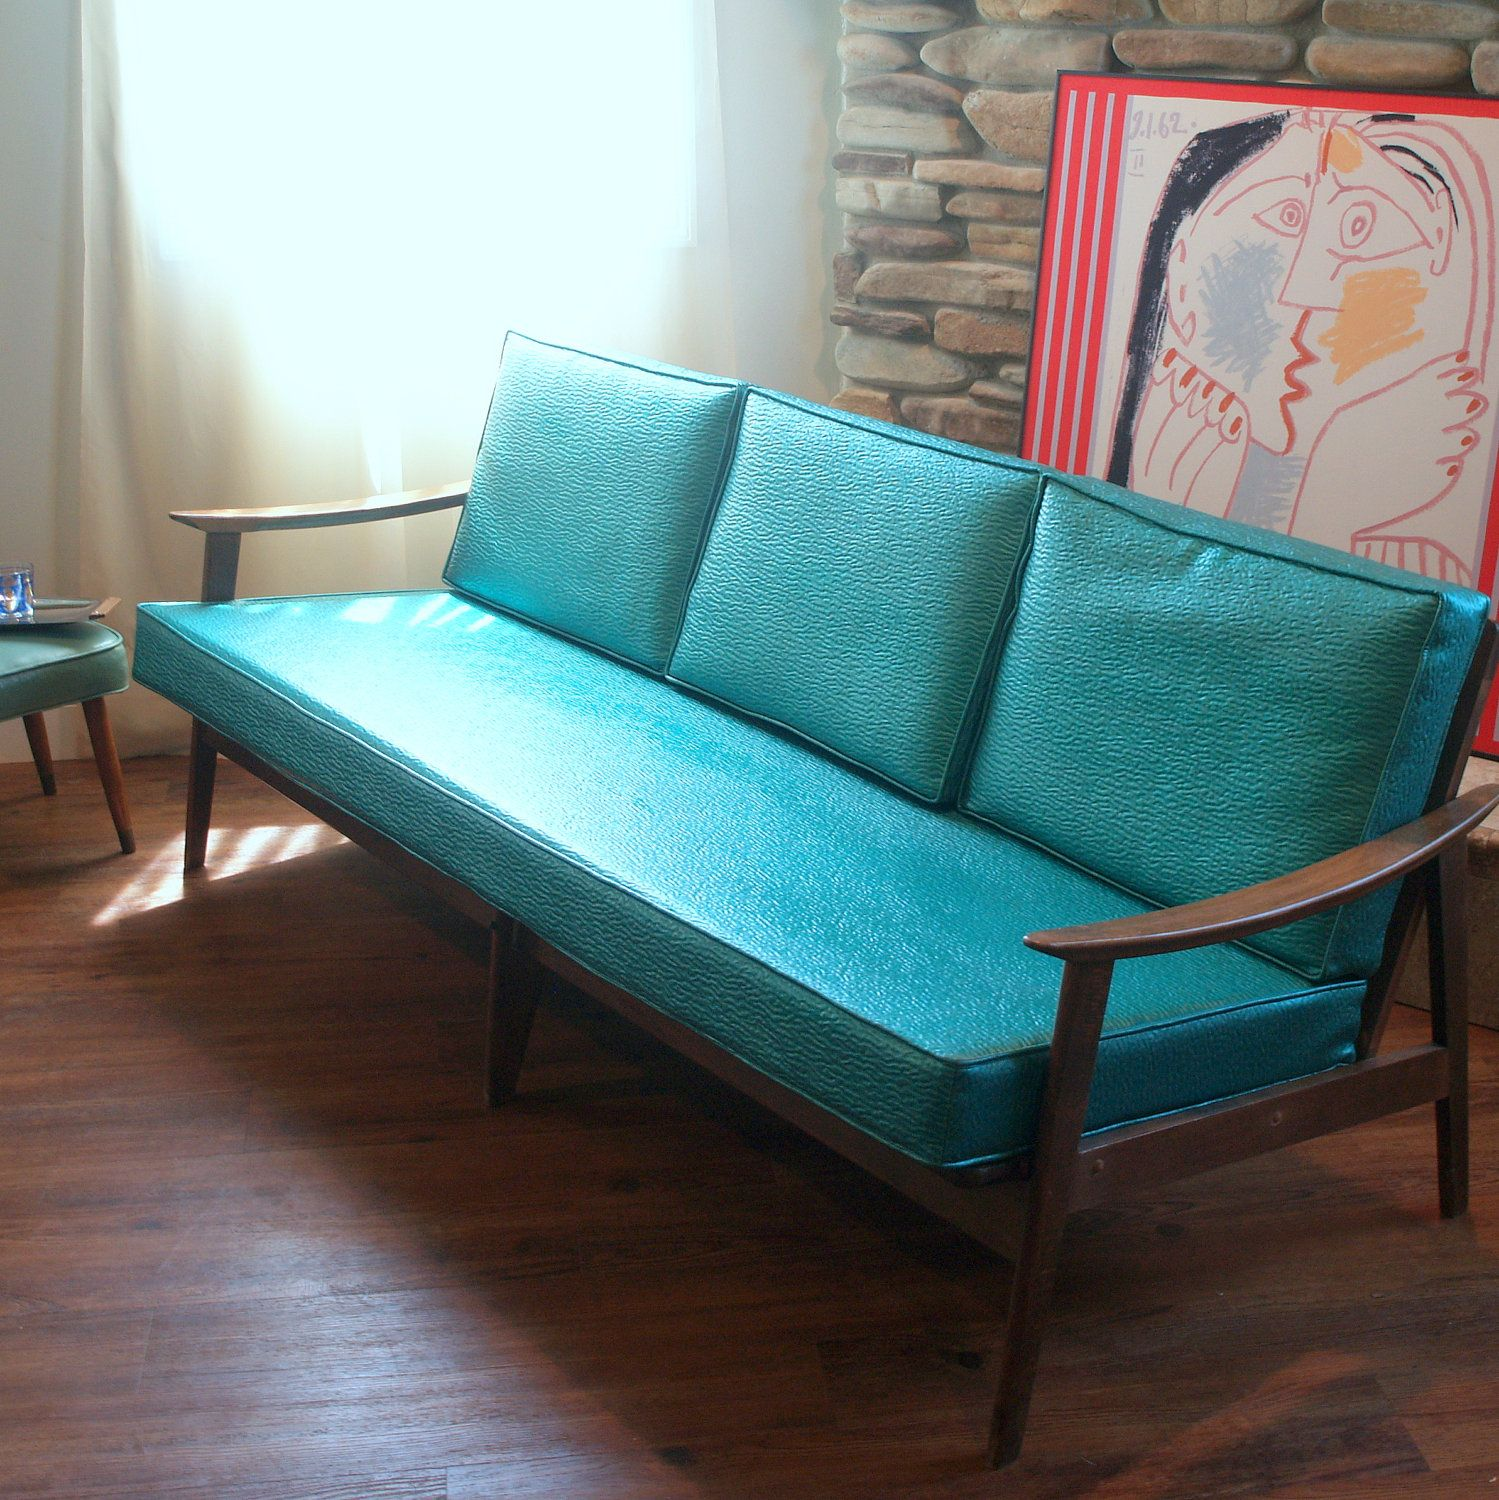 VINTAGE DANISH MODERN Sofa Lovely 1950u0027s Mid Century Modern Furniture  Lounge Style Solid Wood Teal And Walnut European Made Chicago Listing